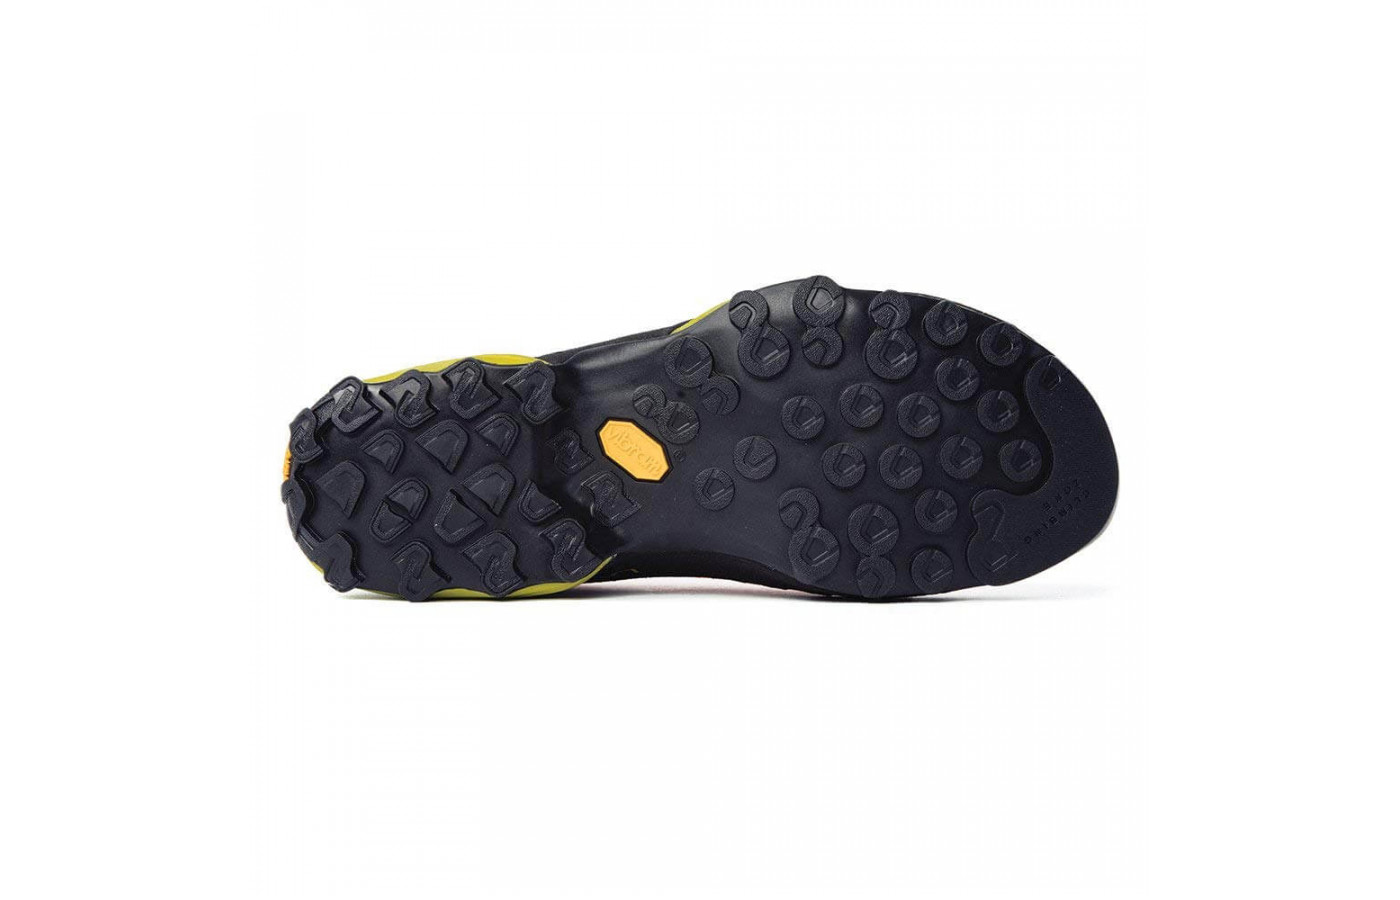 La Sportiva TX3 GTX Hiking Shoe outsole mens bottom